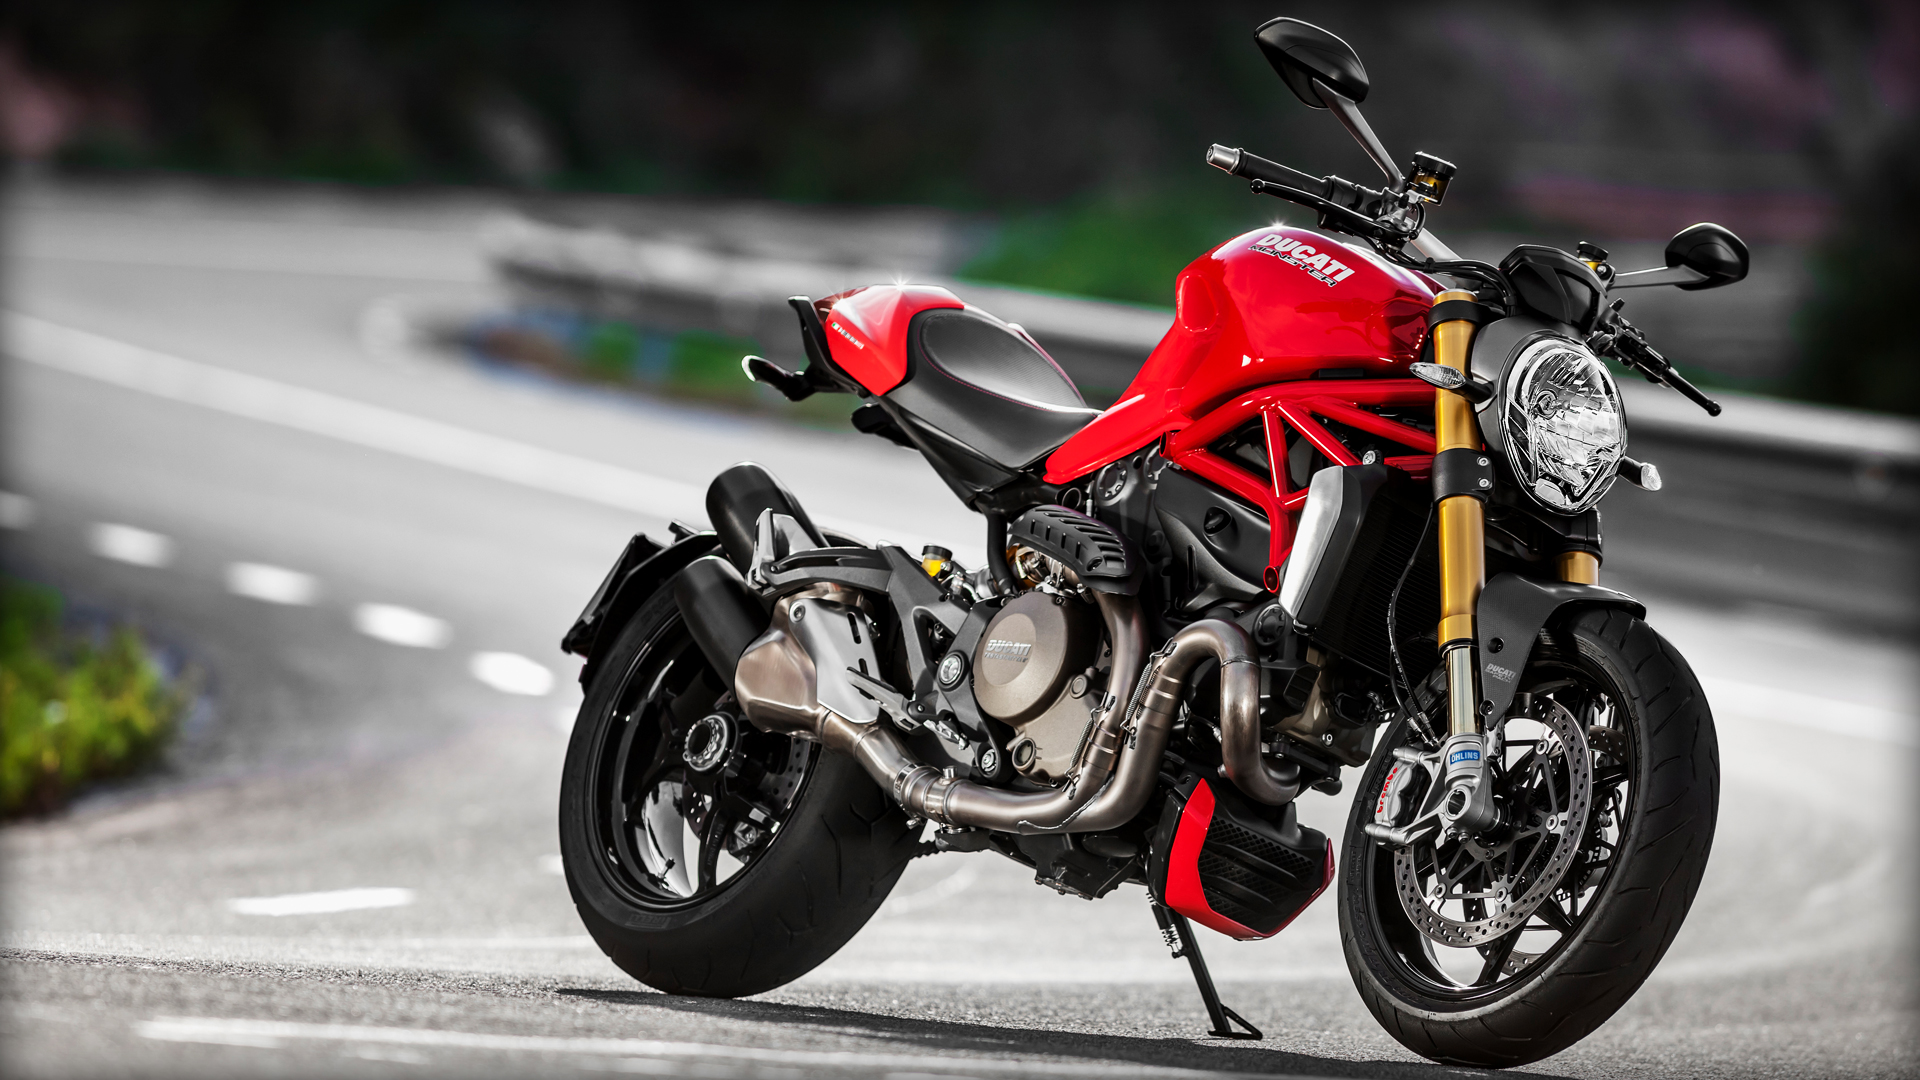 2014 Ducati Monster Wallpaper Iphone Ducati Monster 1200 Monster 1200 Ducati Monster 821